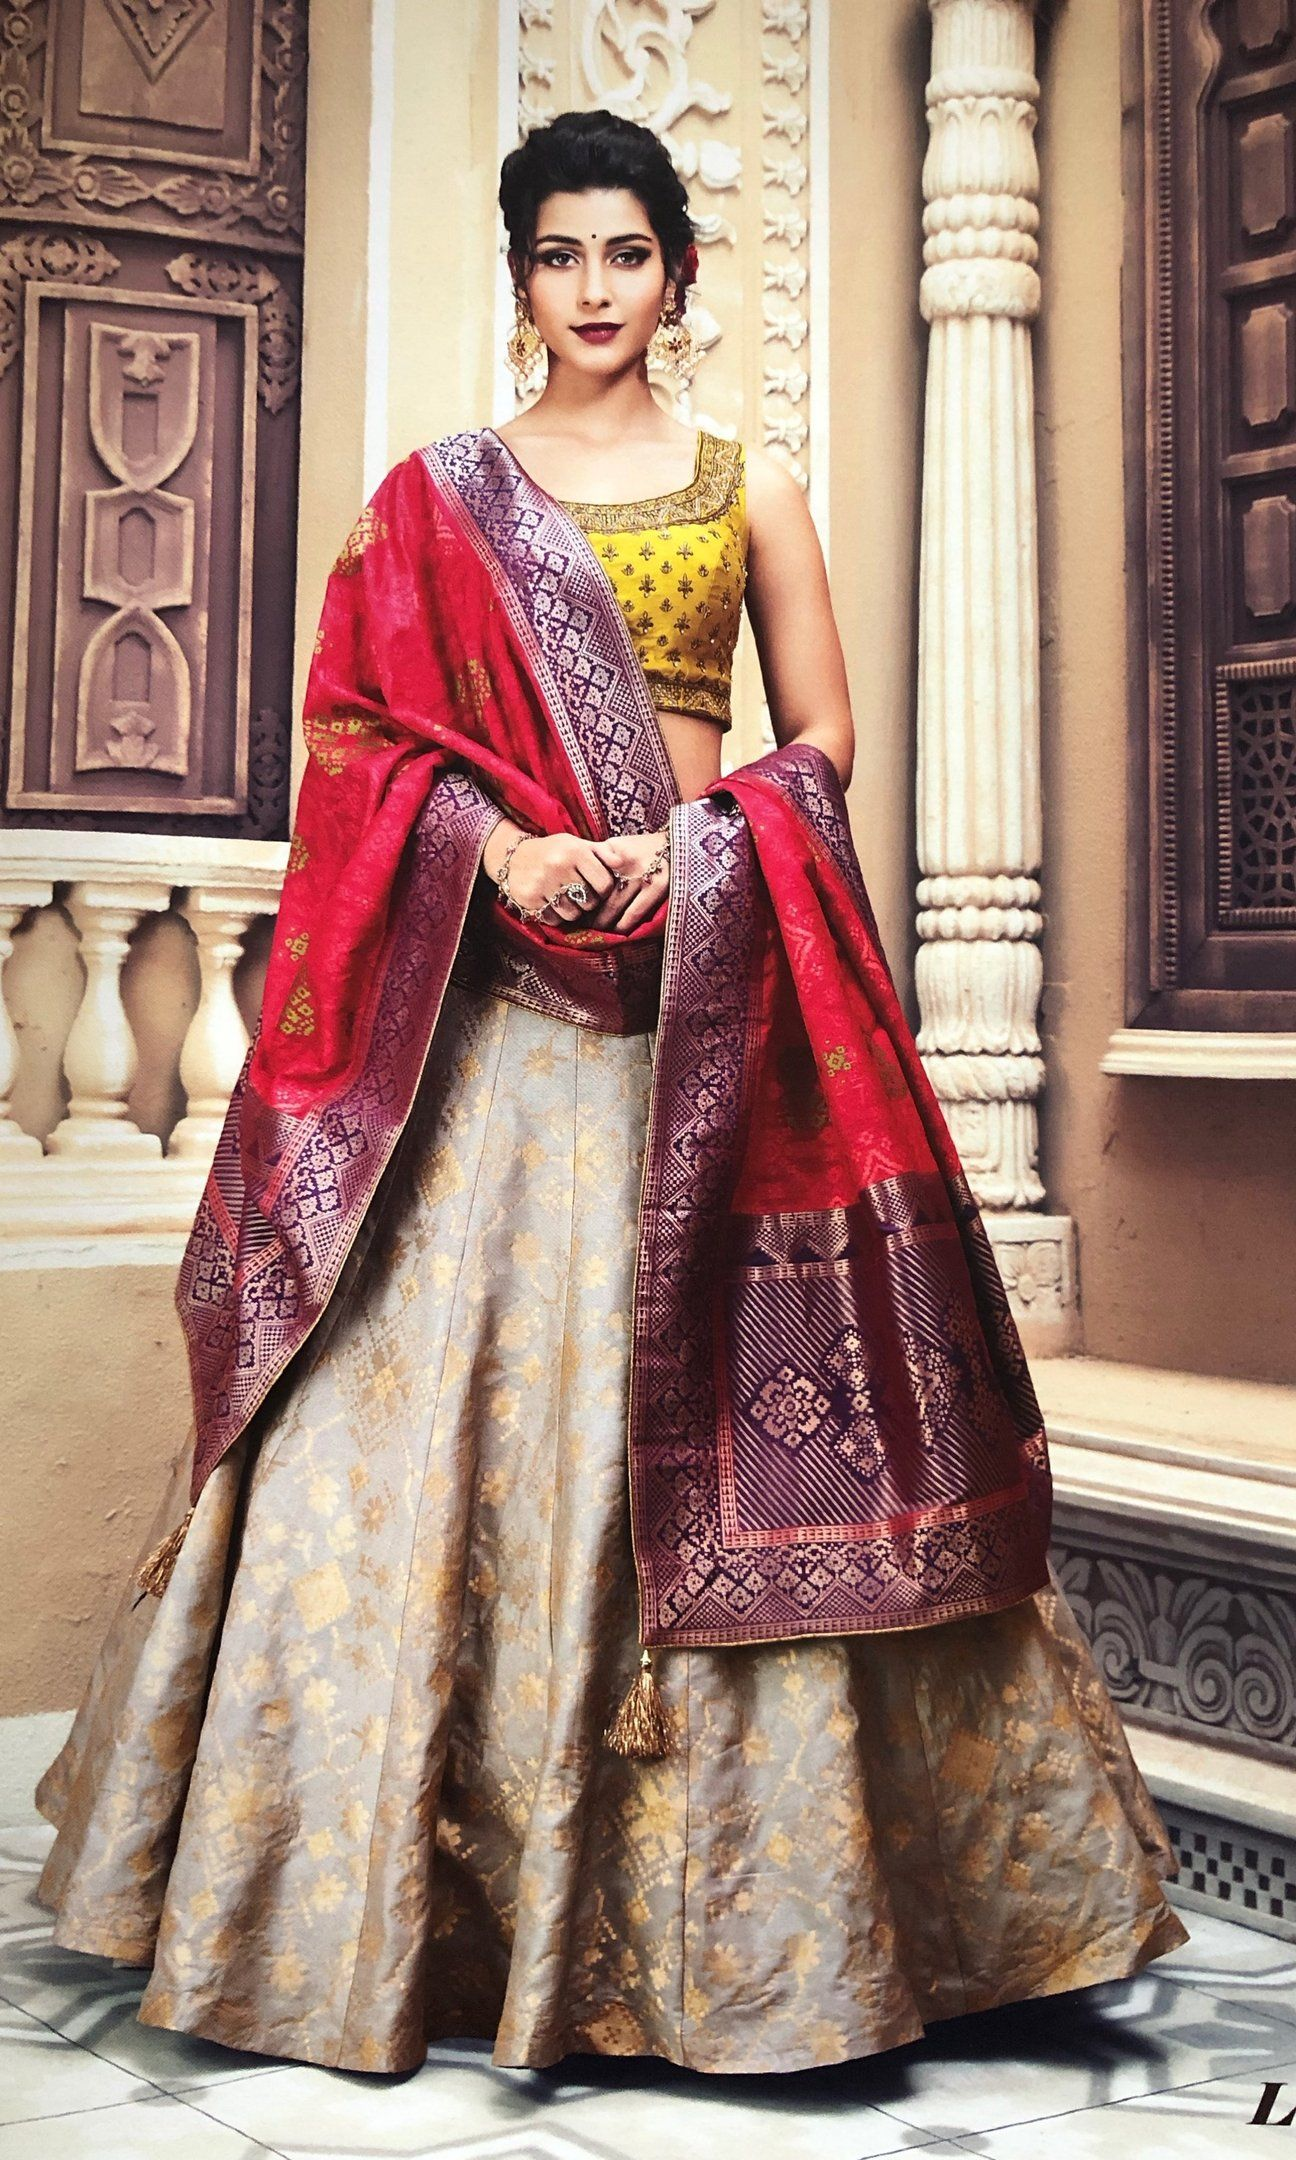 Raas the global desi is Chicago based Indian clothing online